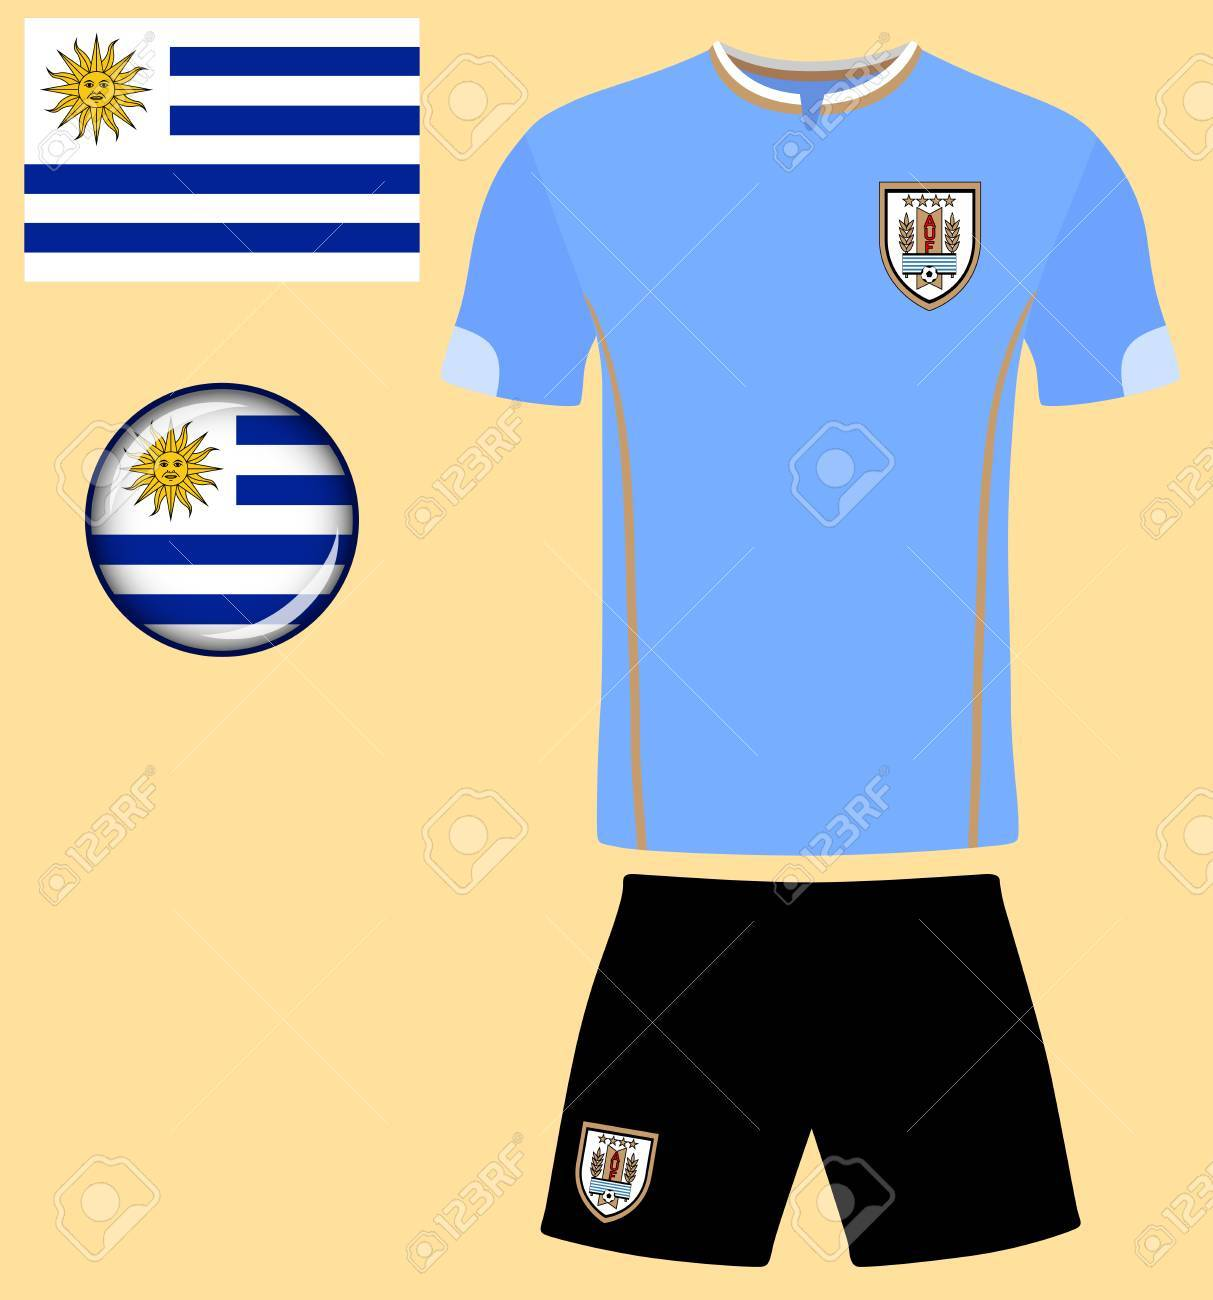 09a47d8d668 Uruguay Football Jersey. Vector graphic illustration representing the national  football jersey of Uruguay. Stock